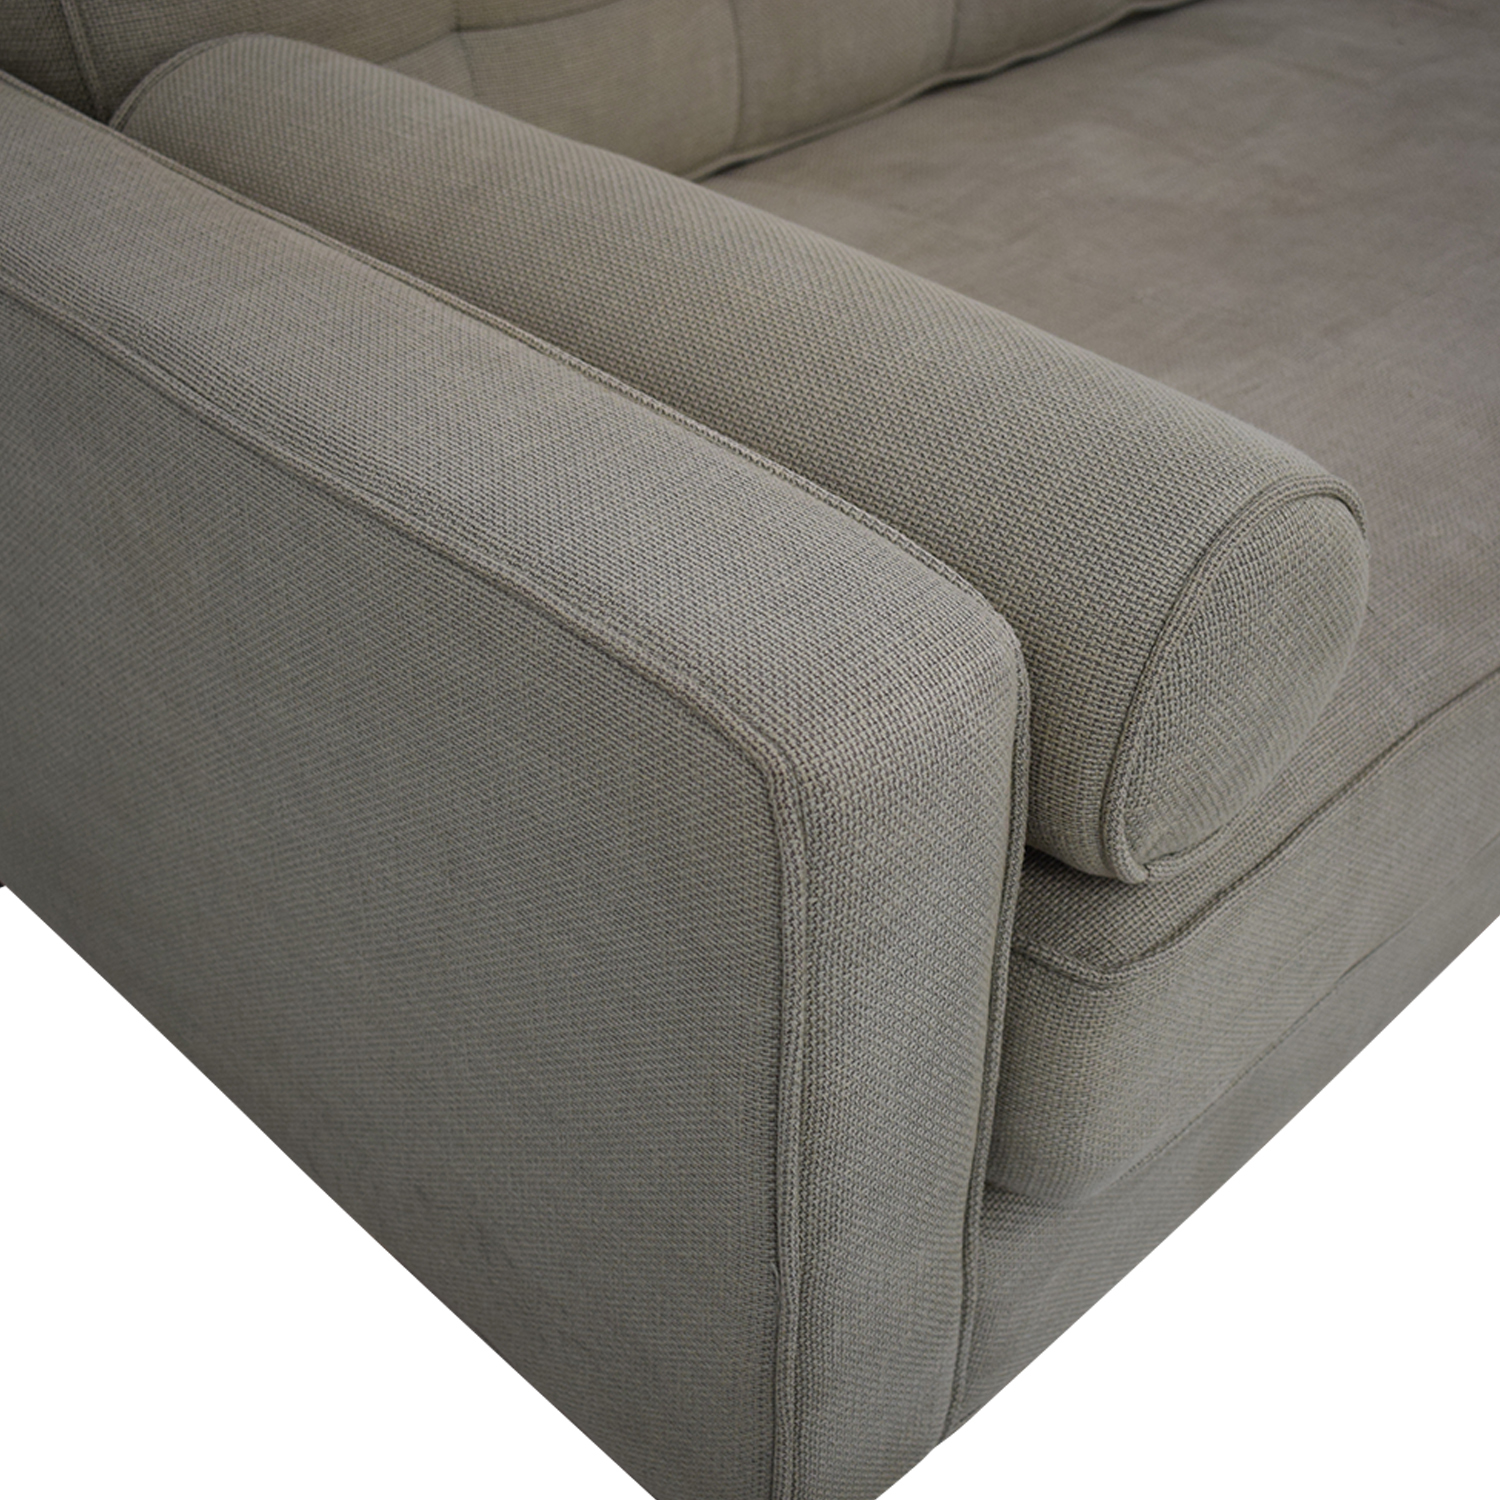 Custom Tufted Tuxedo Sofa dimensions